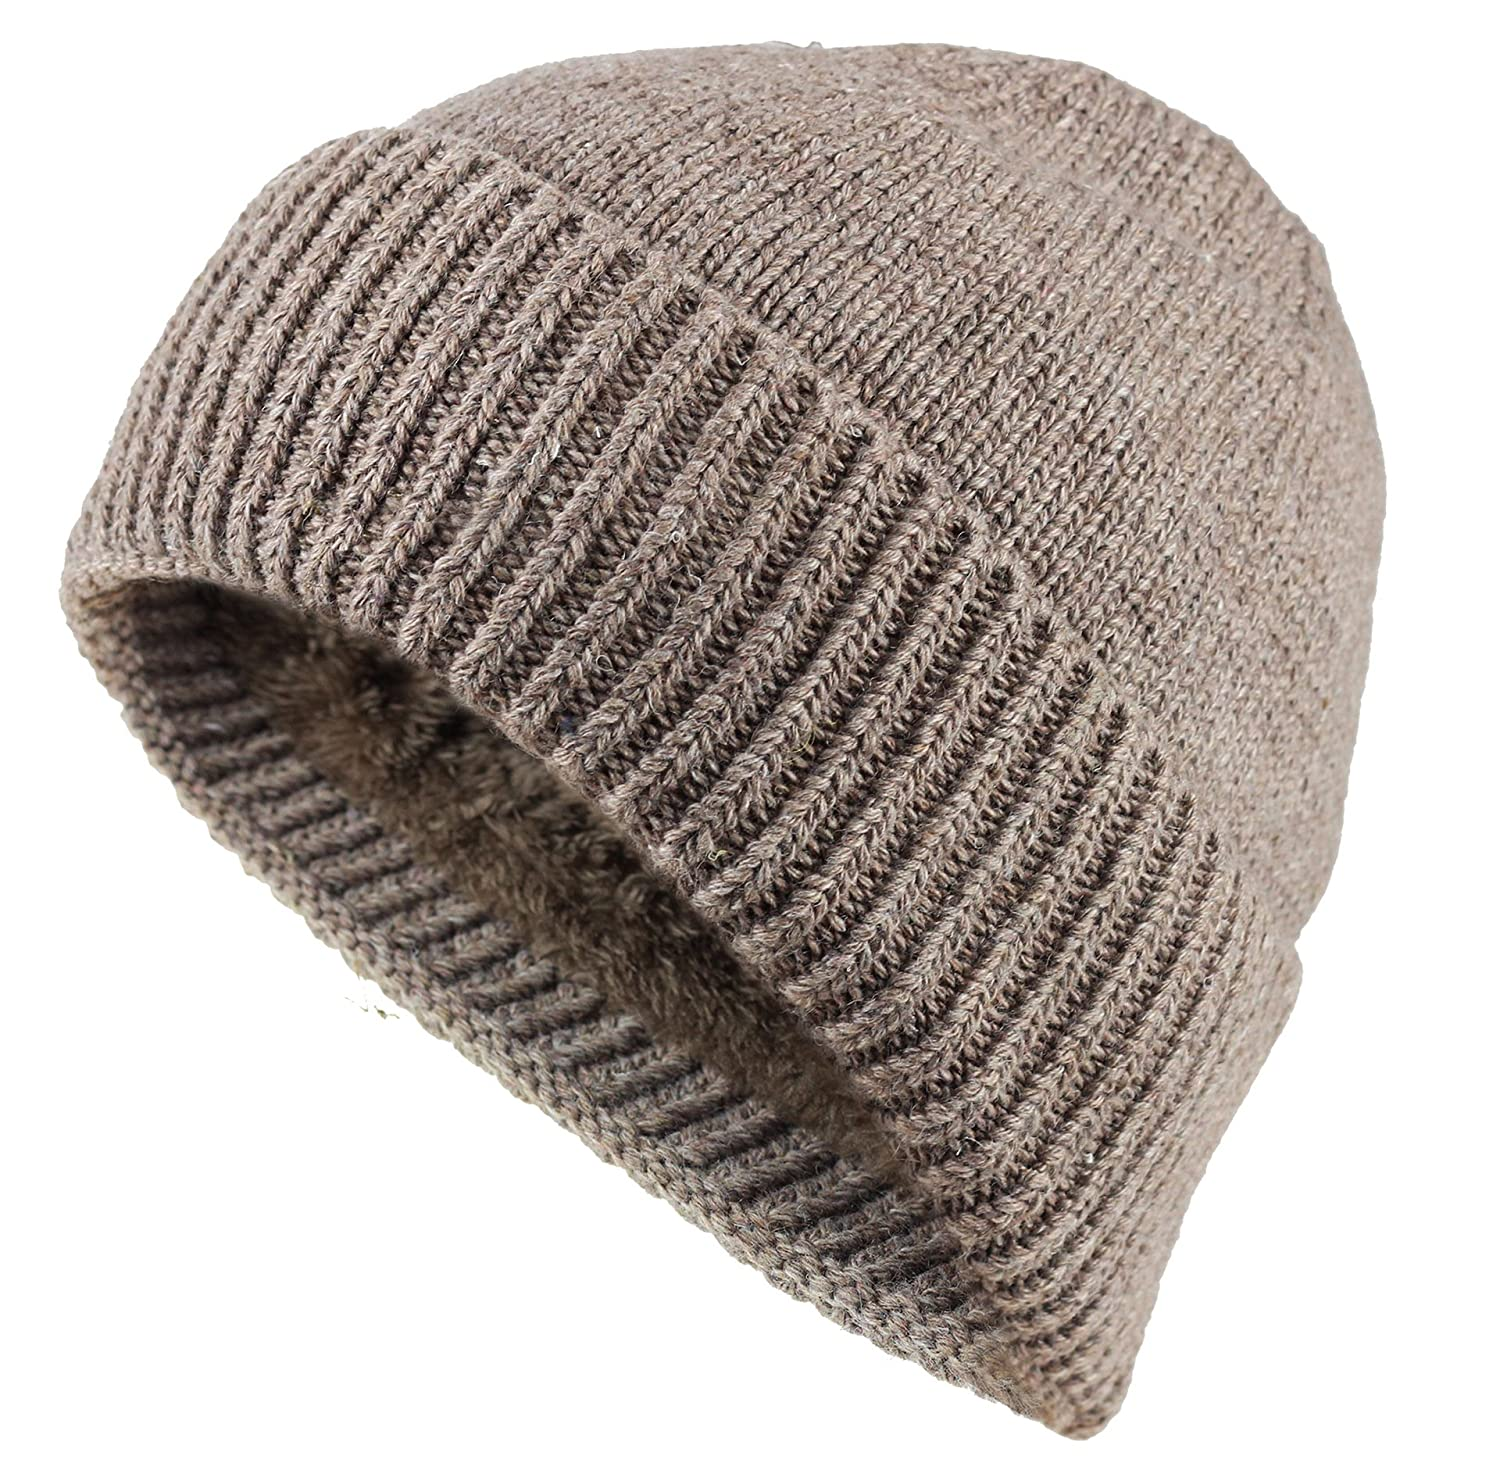 47011a7f658bdd JAKY Global Unisex Thick Cable Knit Beanie Hat Winter Cap Skull Wool Fleece  Lining Windproof for Men & Women - Khaki -: Amazon.co.uk: Clothing